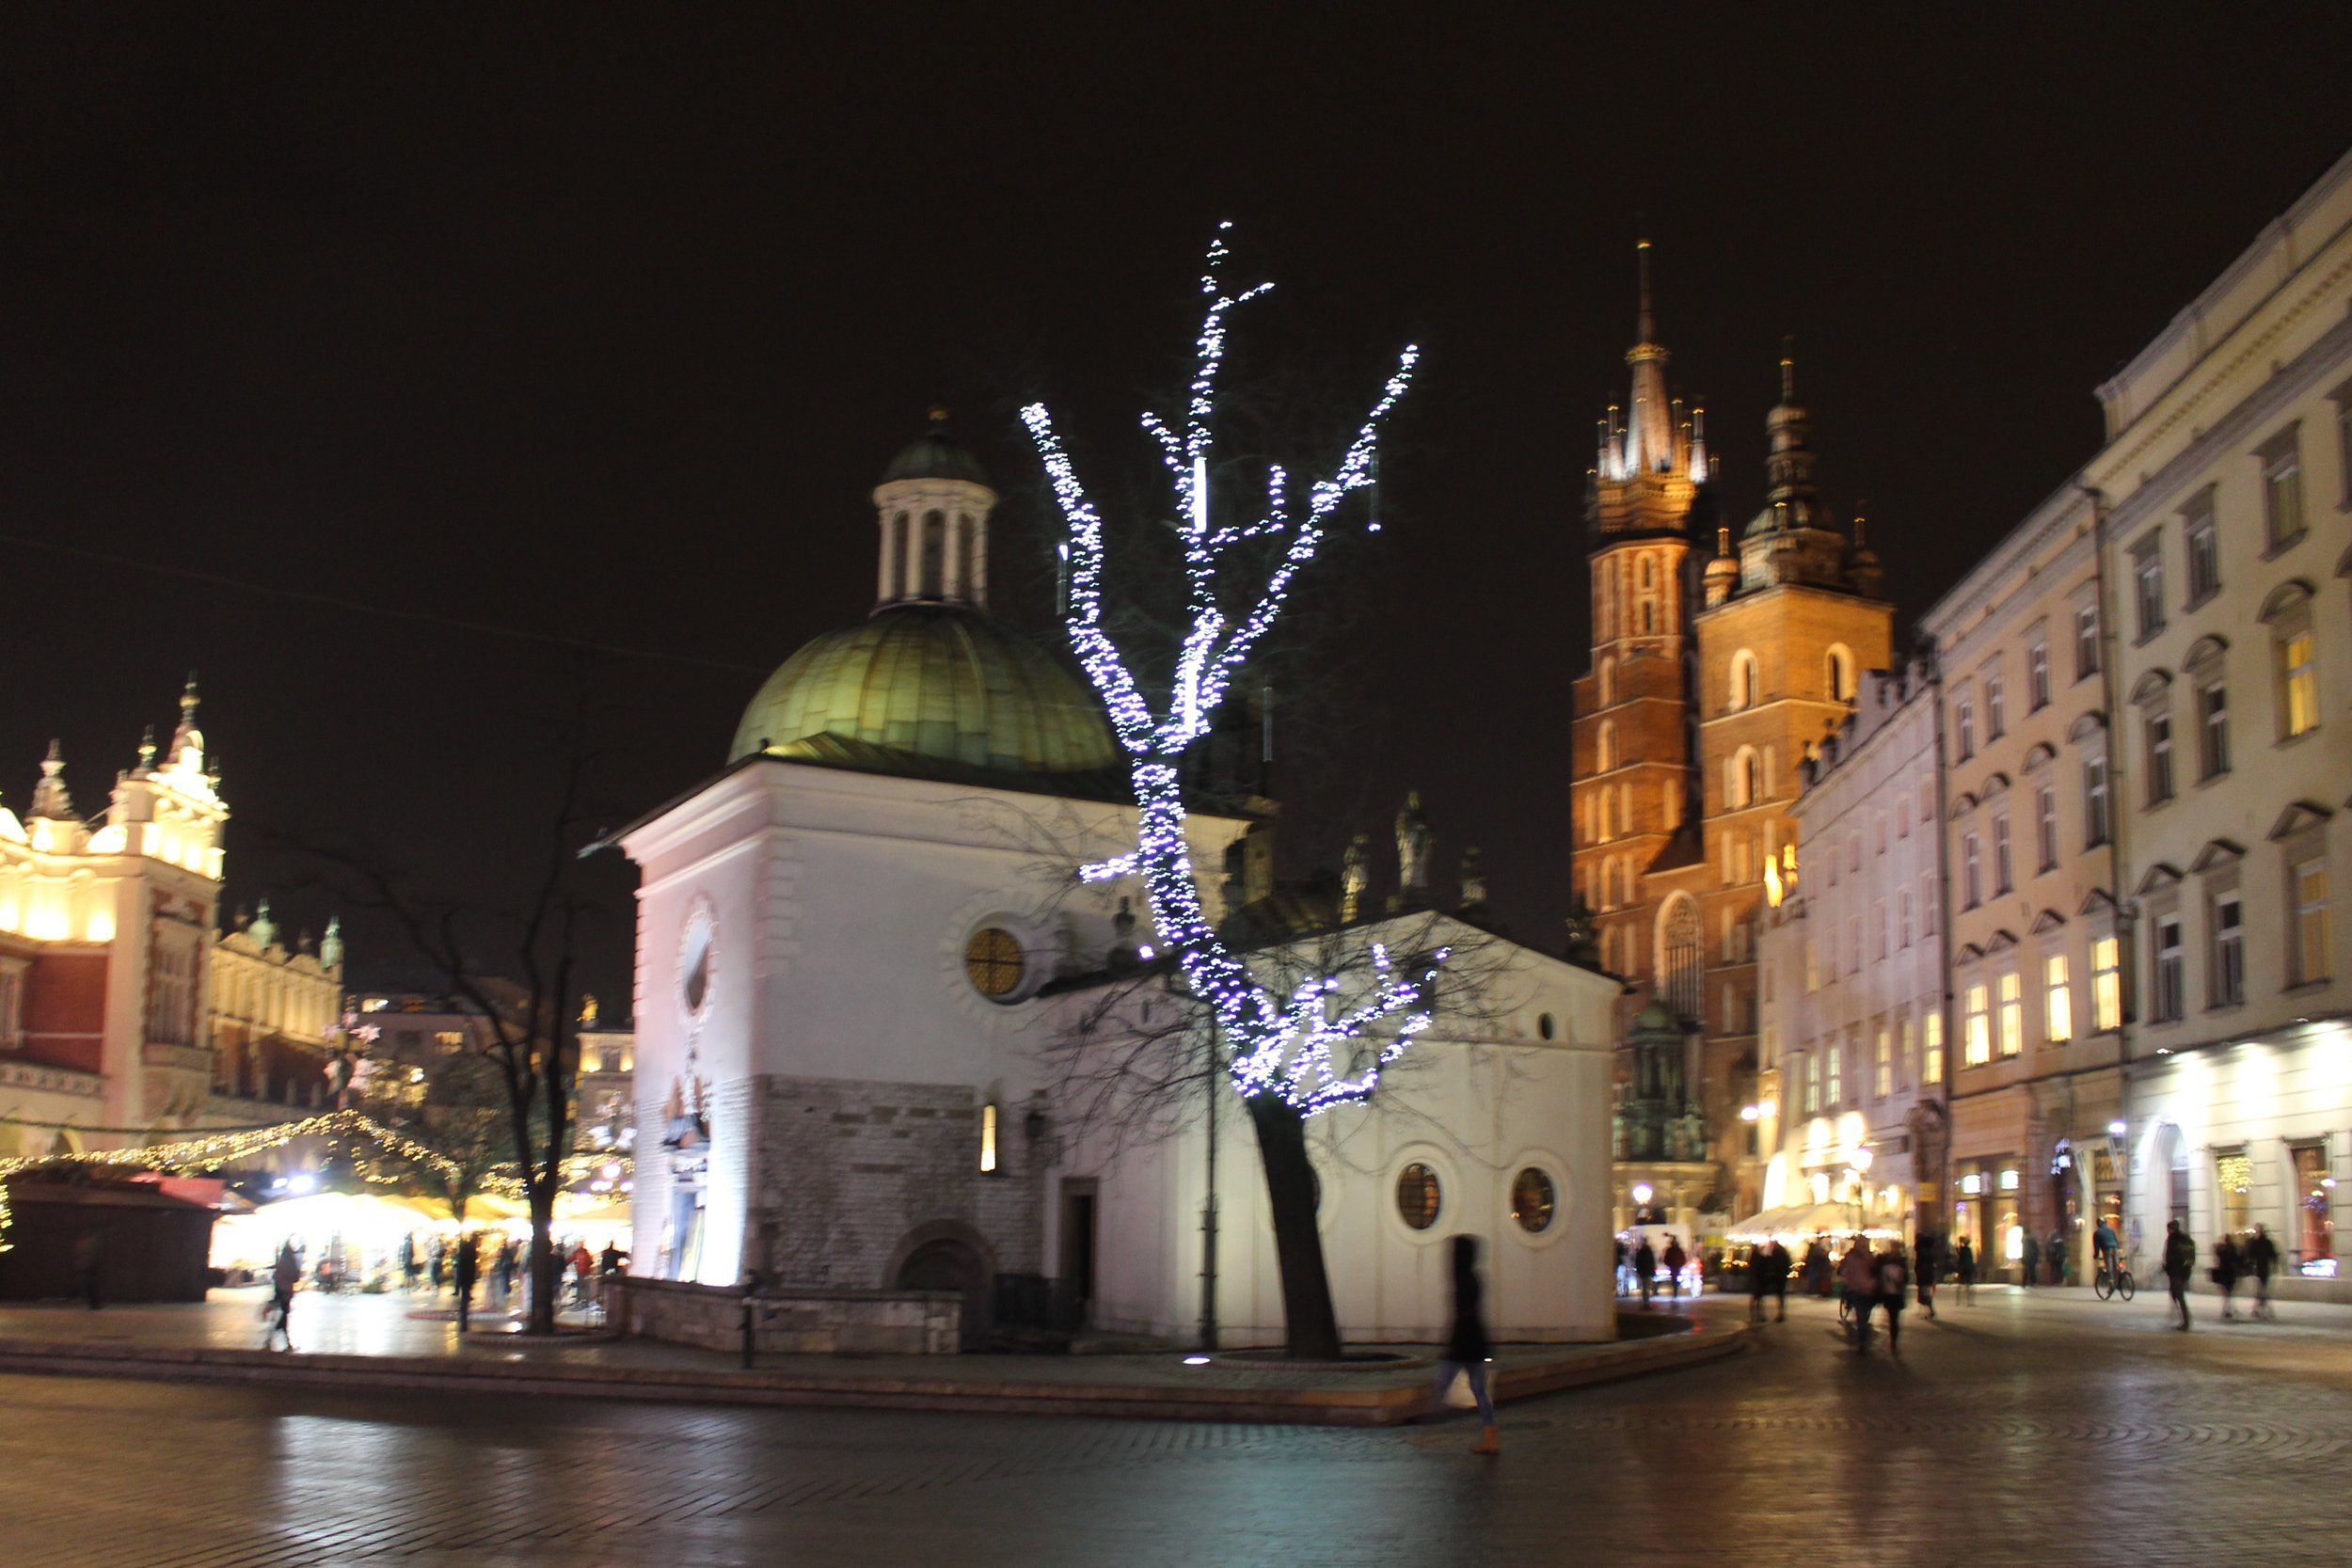 Looking towards the main market square, our first night in Krakow.